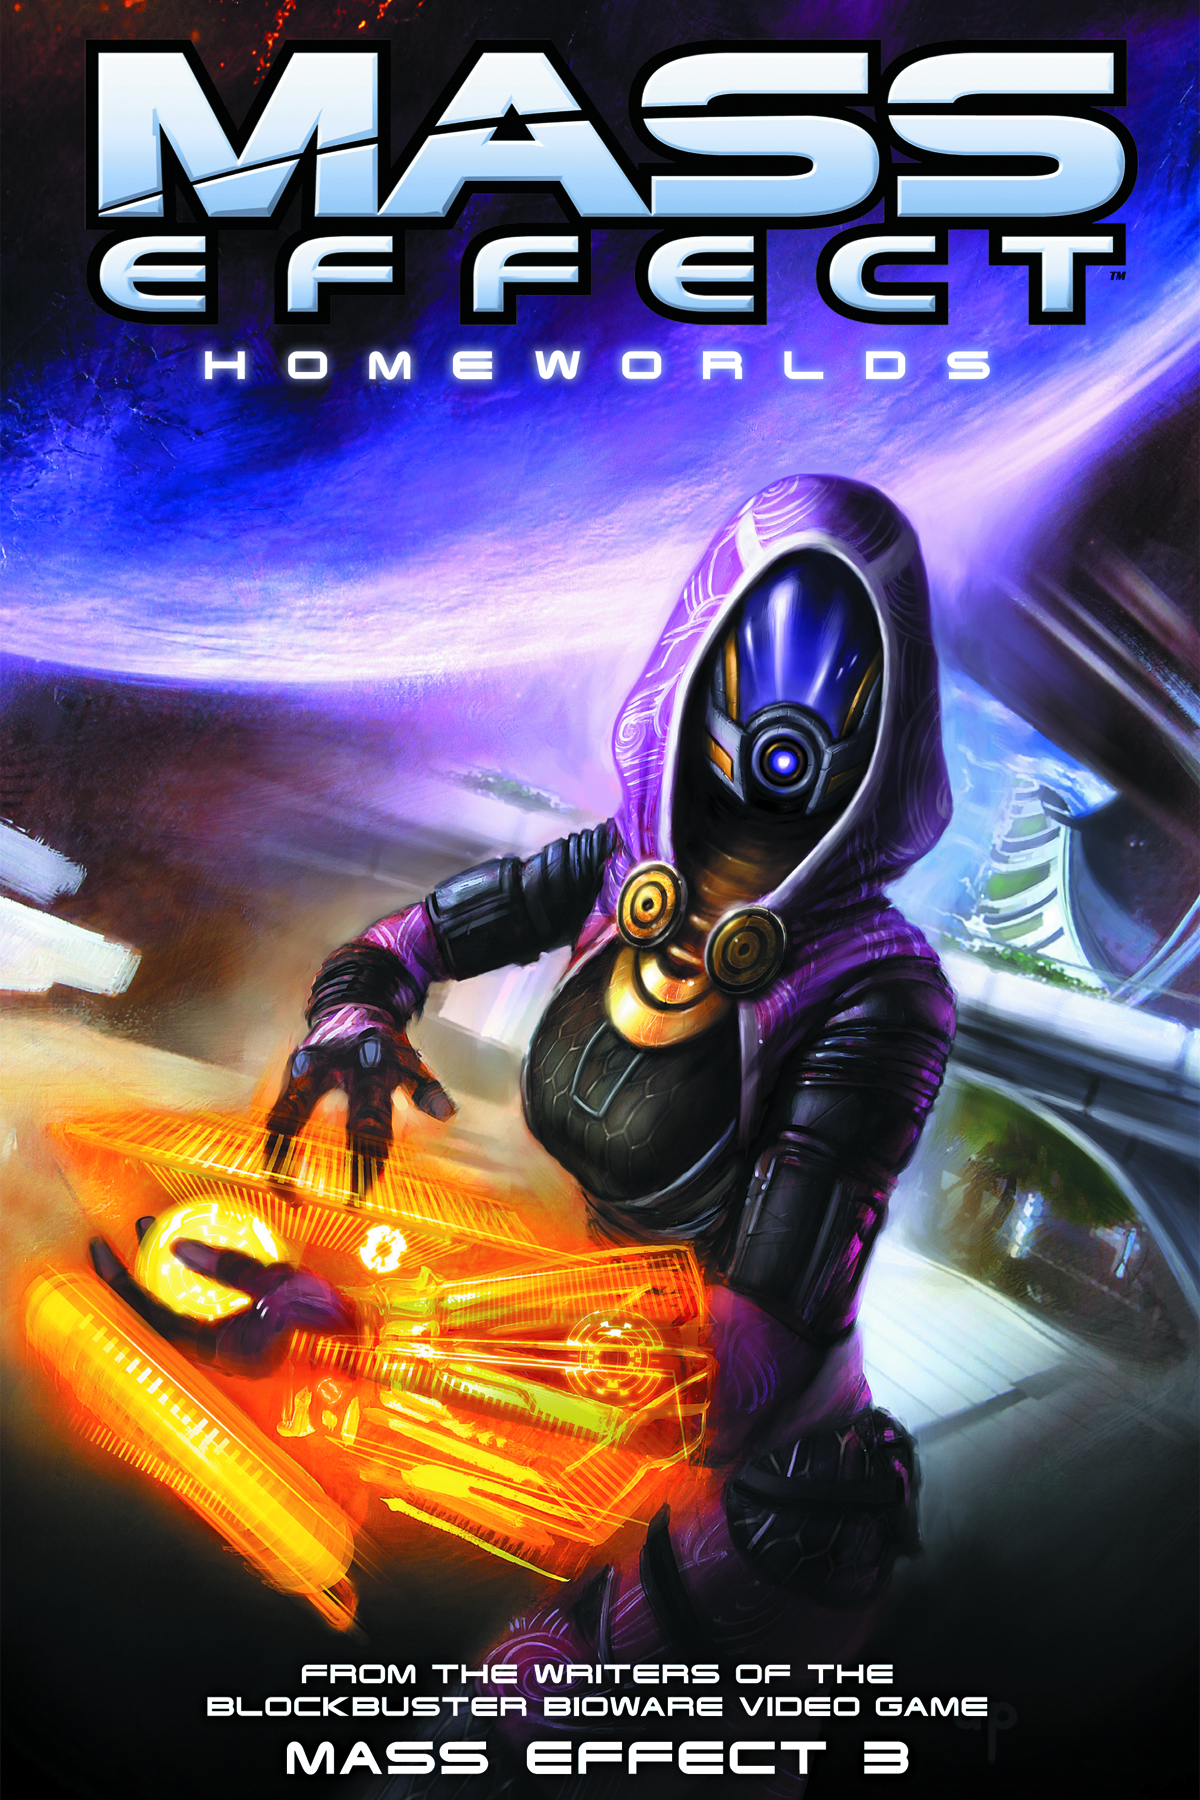 MASS EFFECT TP VOL 04 HOMEWORLDS